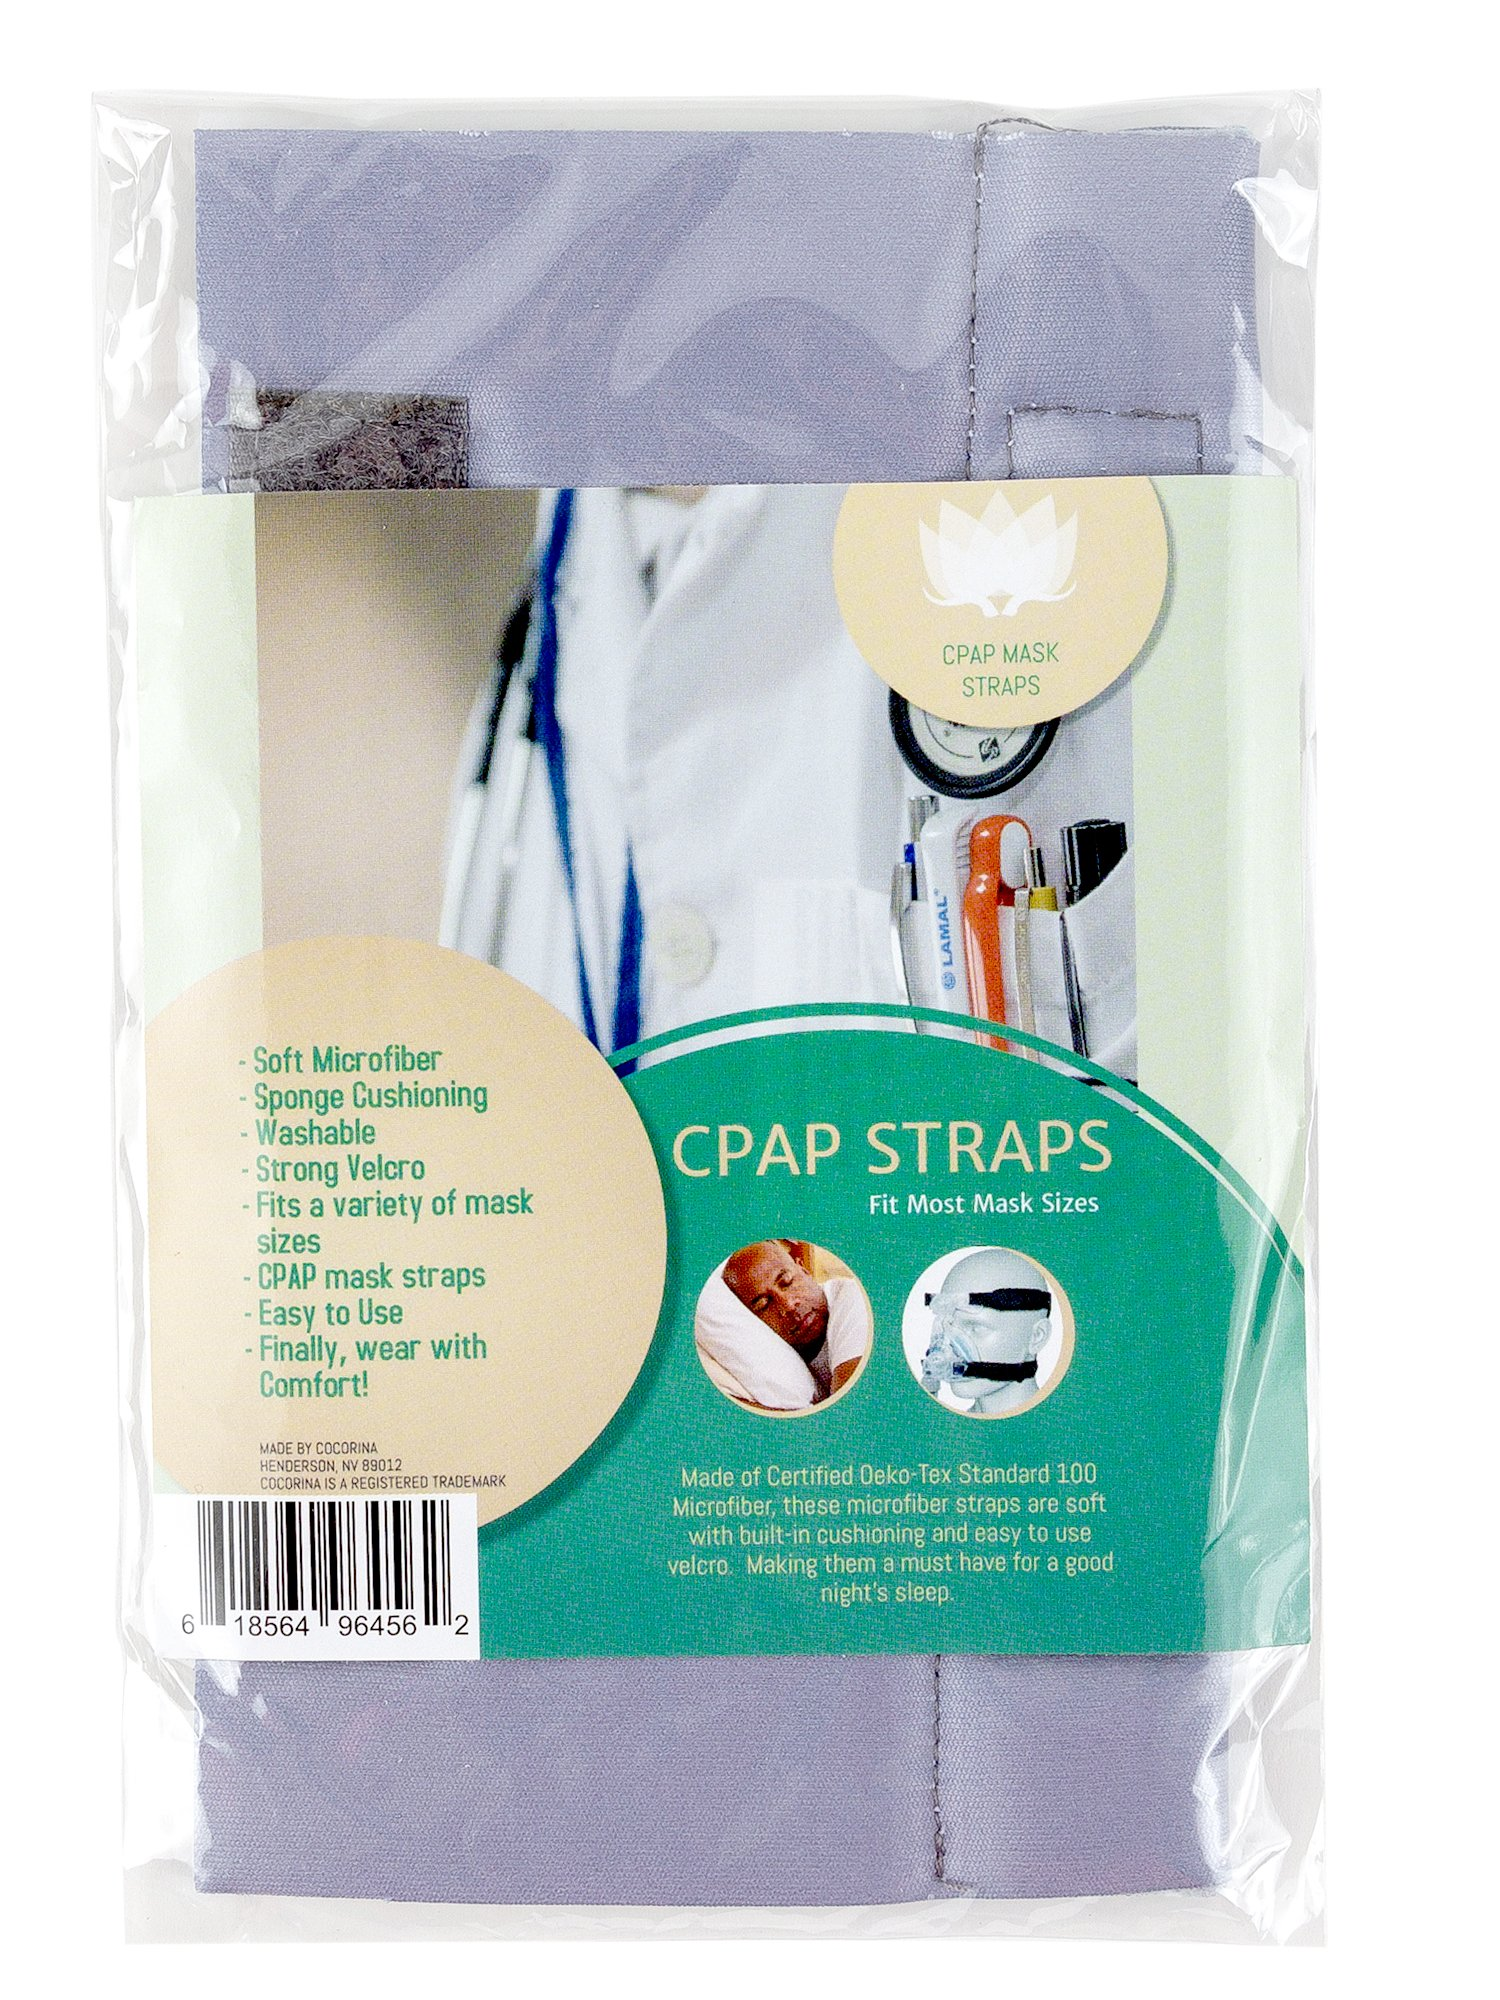 Microfiber CPAP Padded Strap Covers | Top Quality CPAP Strap Covers Made w/Silky Soft Microfiber & Sponge Cushioning | Headgear Face/Cheek Pillows, Say Goodbye to Morning Lines, Marks & Discomfort